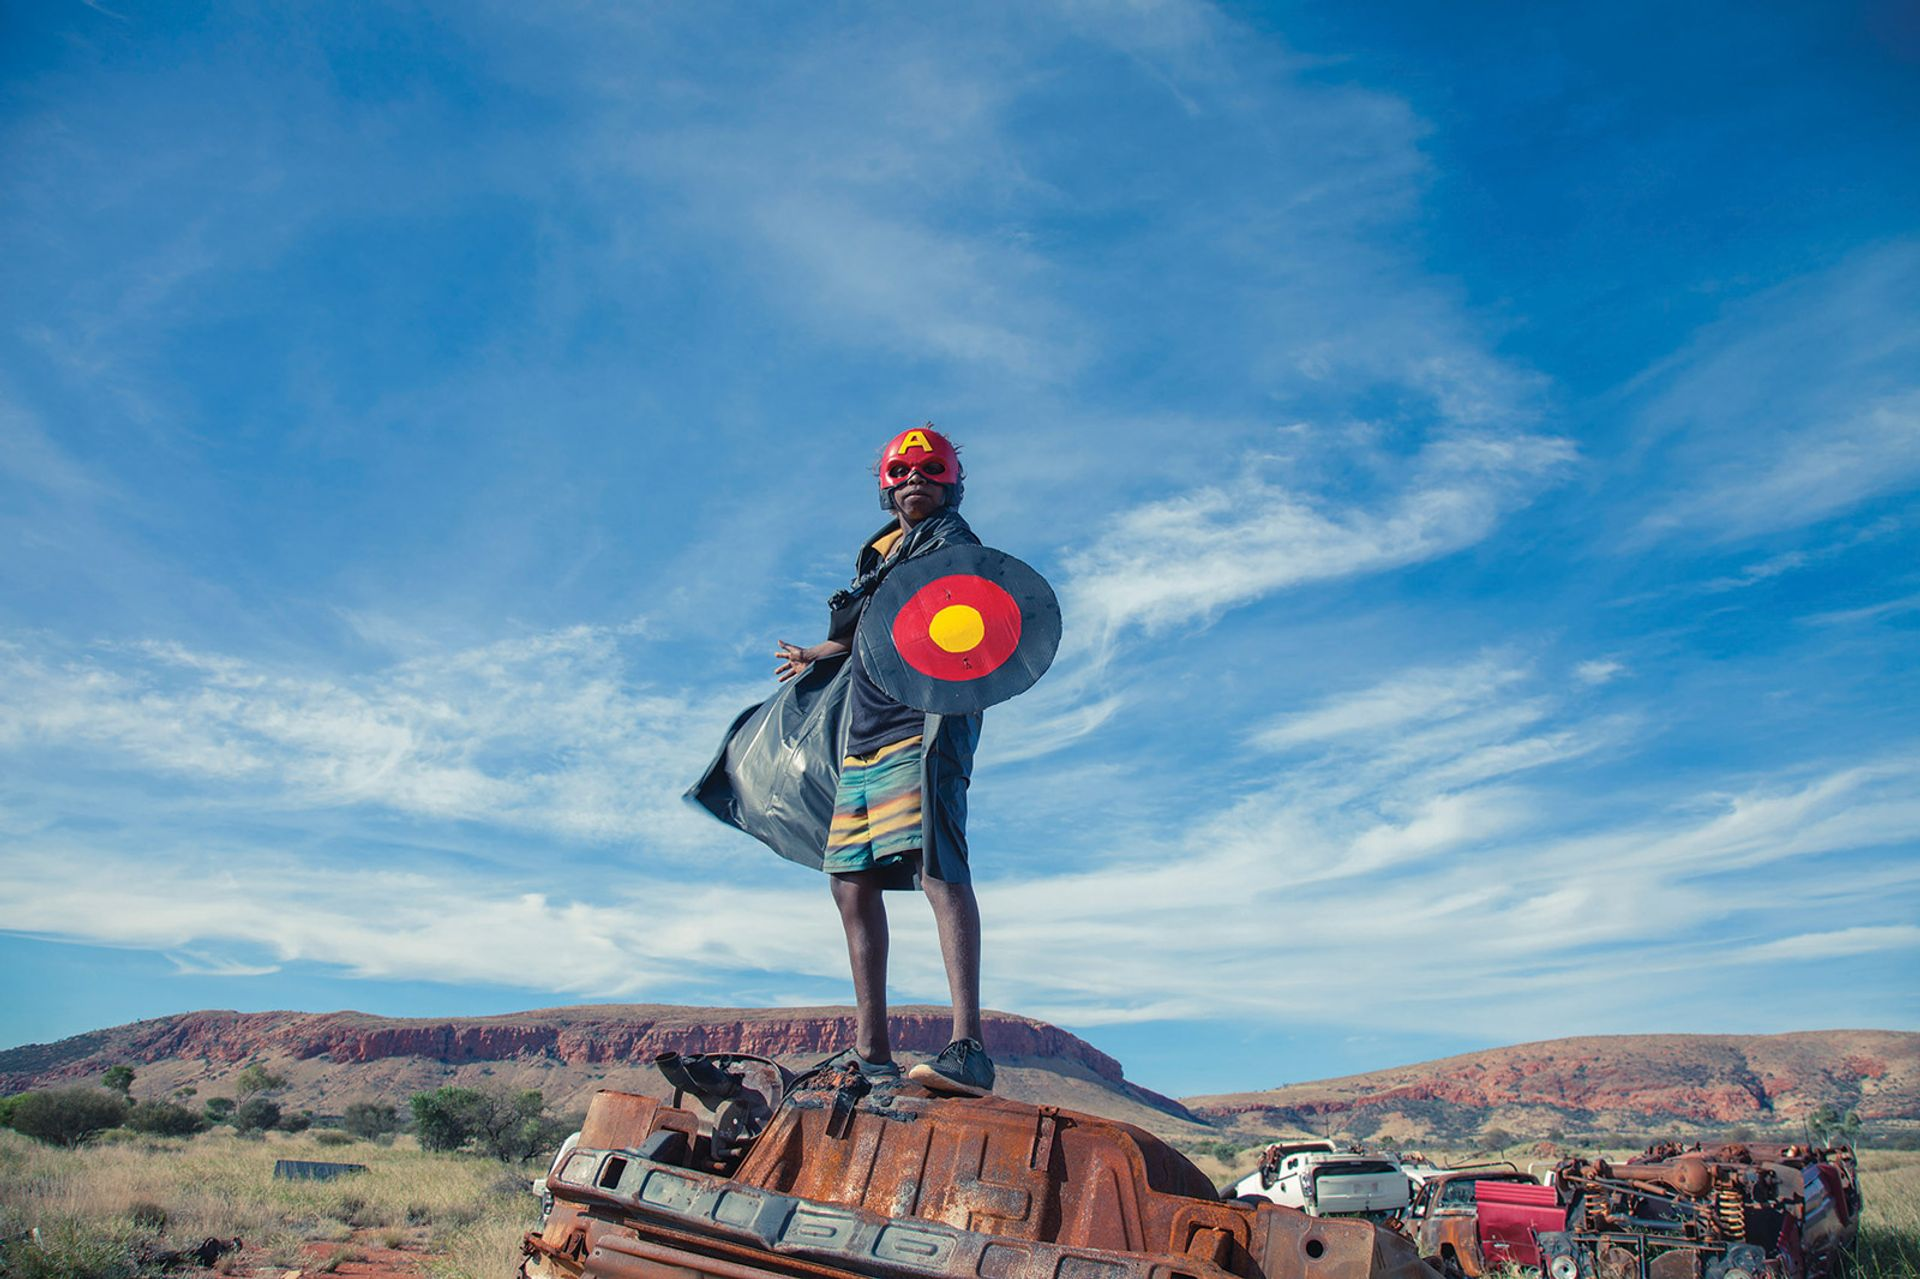 Warakurna Superheroes #1 (2017), by Tony Albert, David C. Collins and Kieran Lawson, is part of a series on show in the redeveloped museum Photo: courtesy of Sullivan+Strumpf